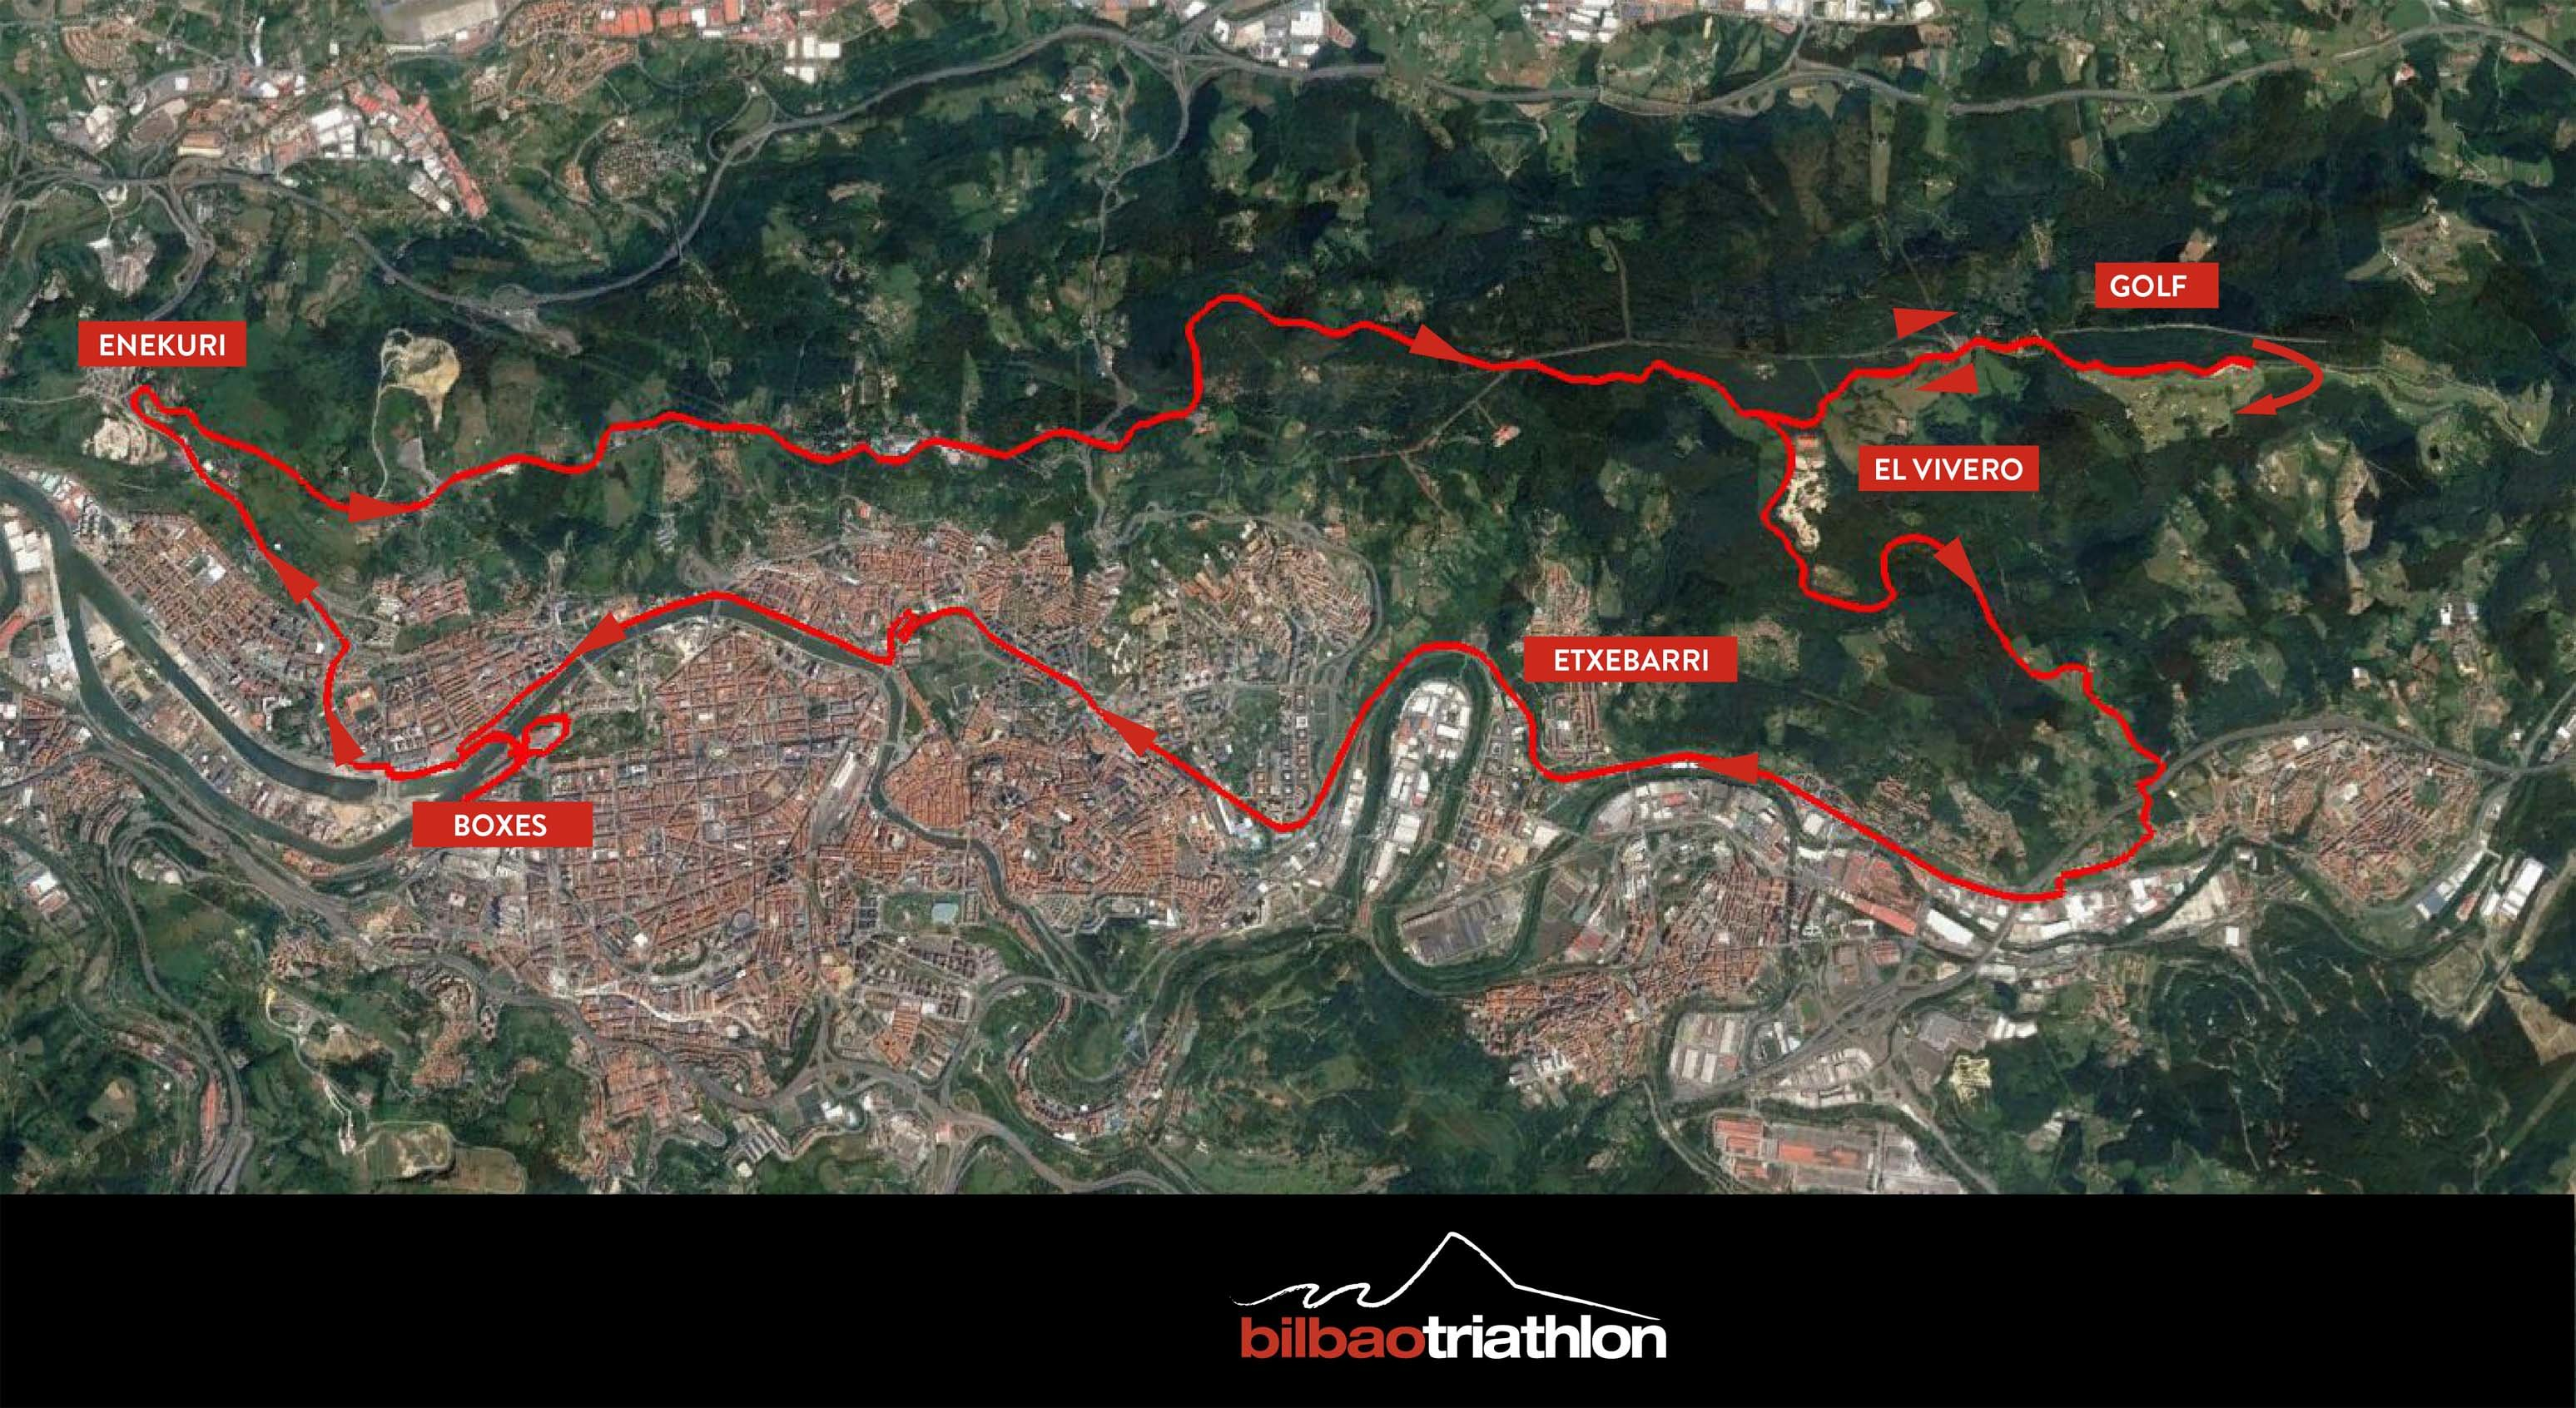 News at the Bilbao Triathlon: new cycling circuit